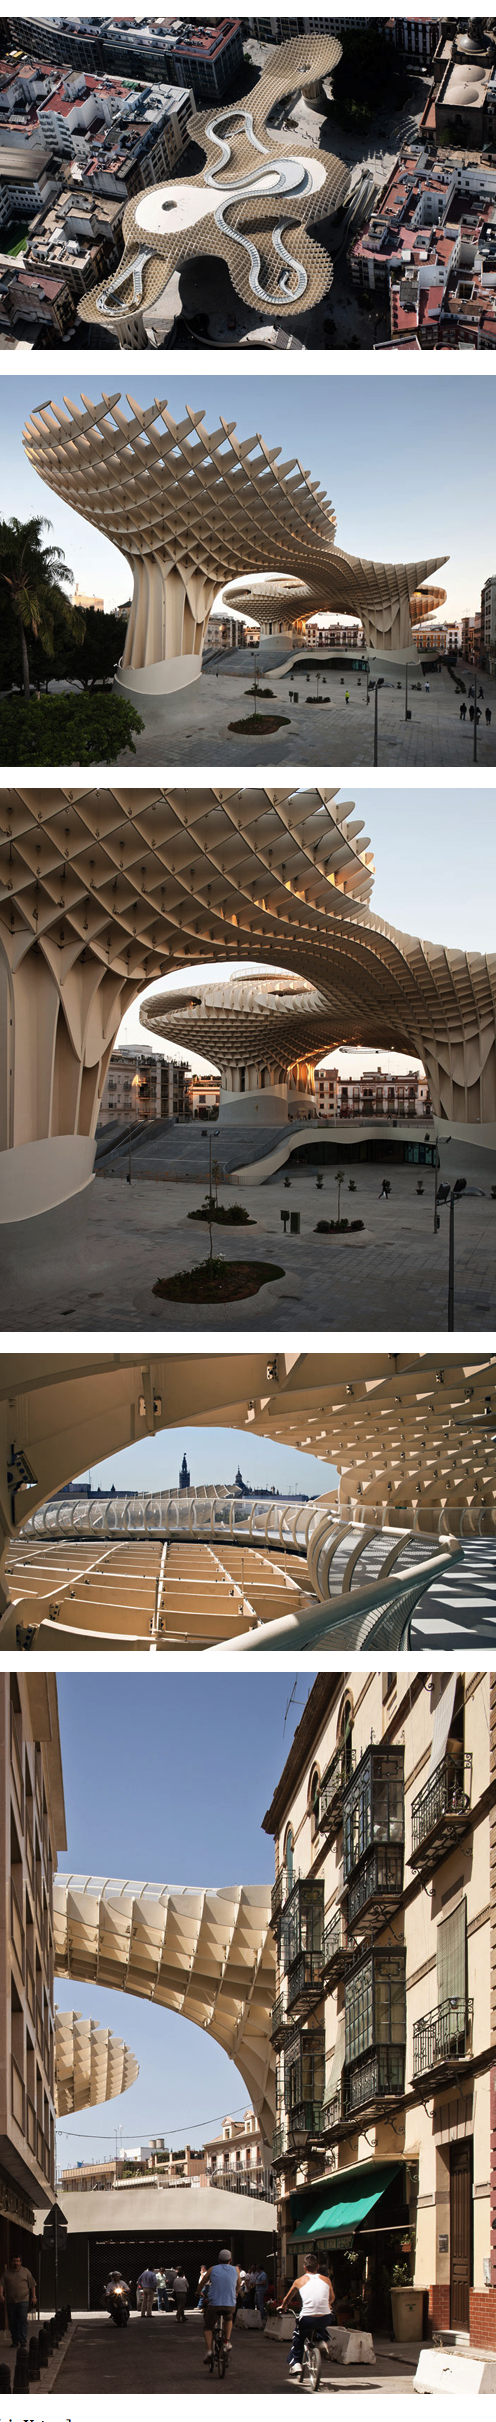 Metropol parasol the world s largest wooden structure - Metropol Parasol The World S Largest Wooden Structure